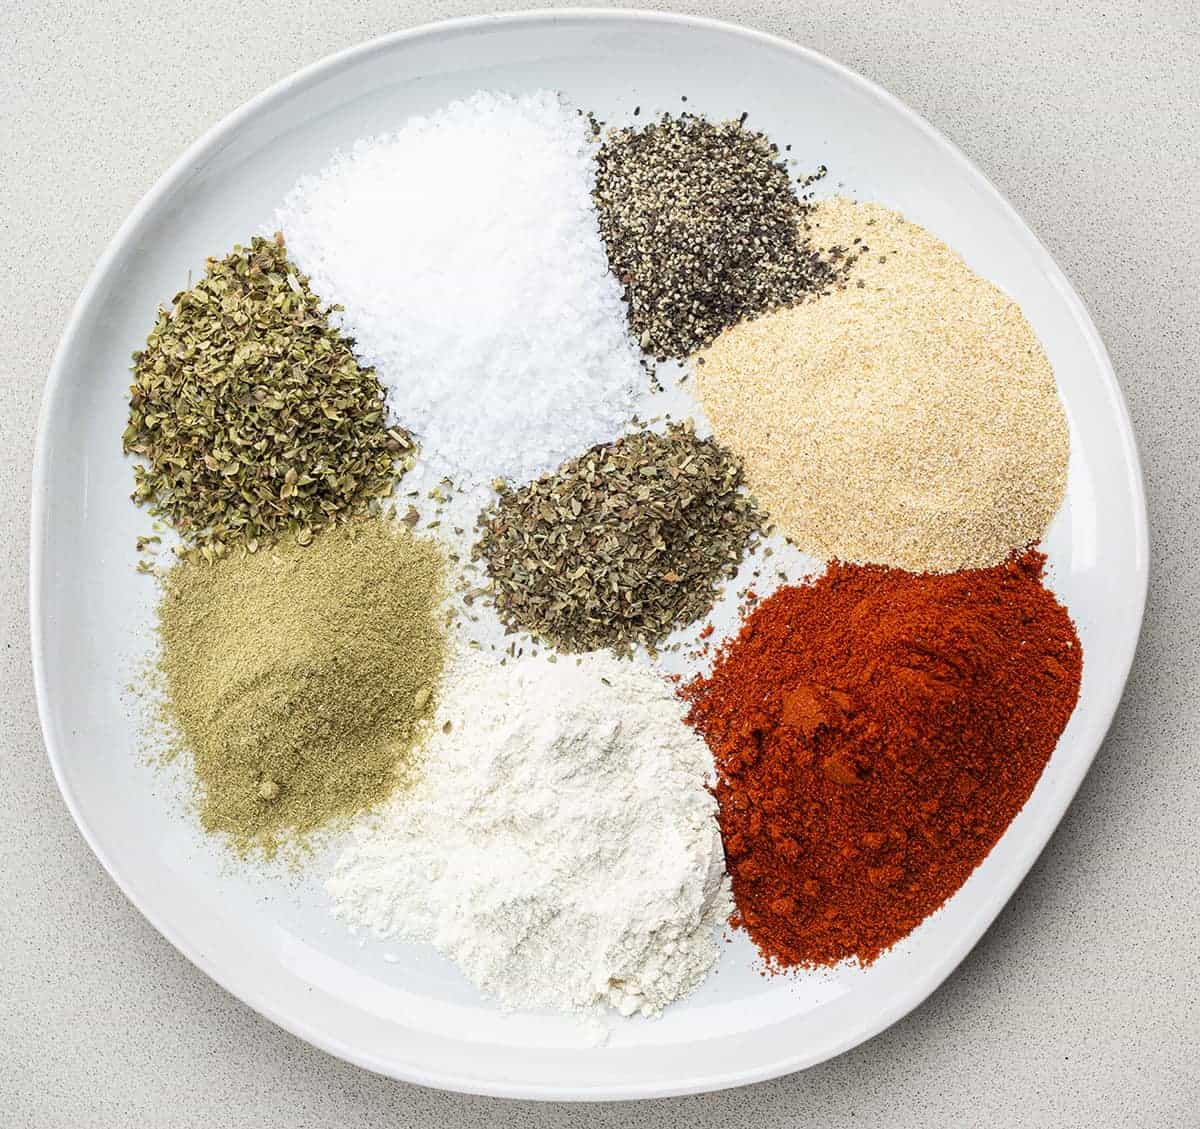 Homemade Blackened Seasoning Recipe Ingredients on a Plate